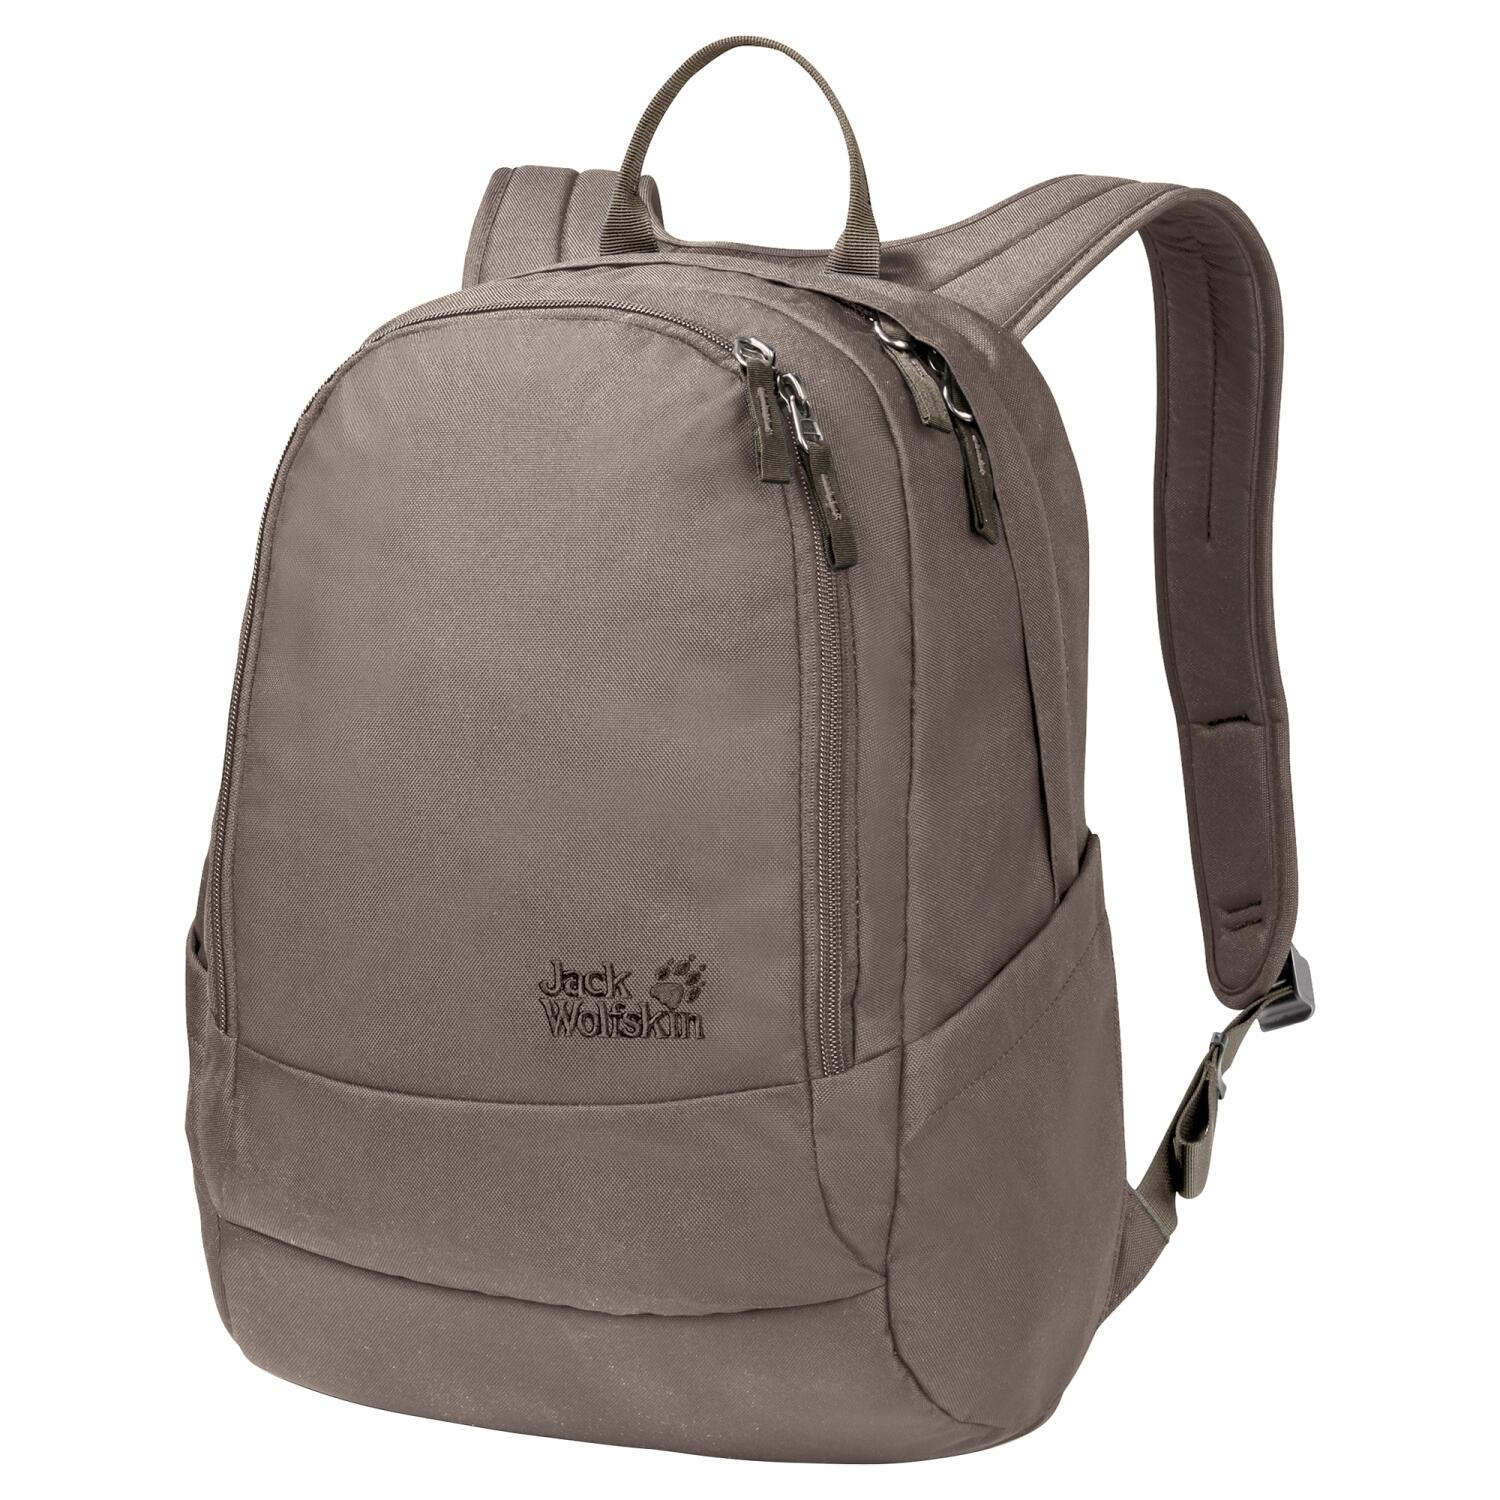 jack-wolfskin-perfect-day-tagesrucksack-farbe-5110-clay-